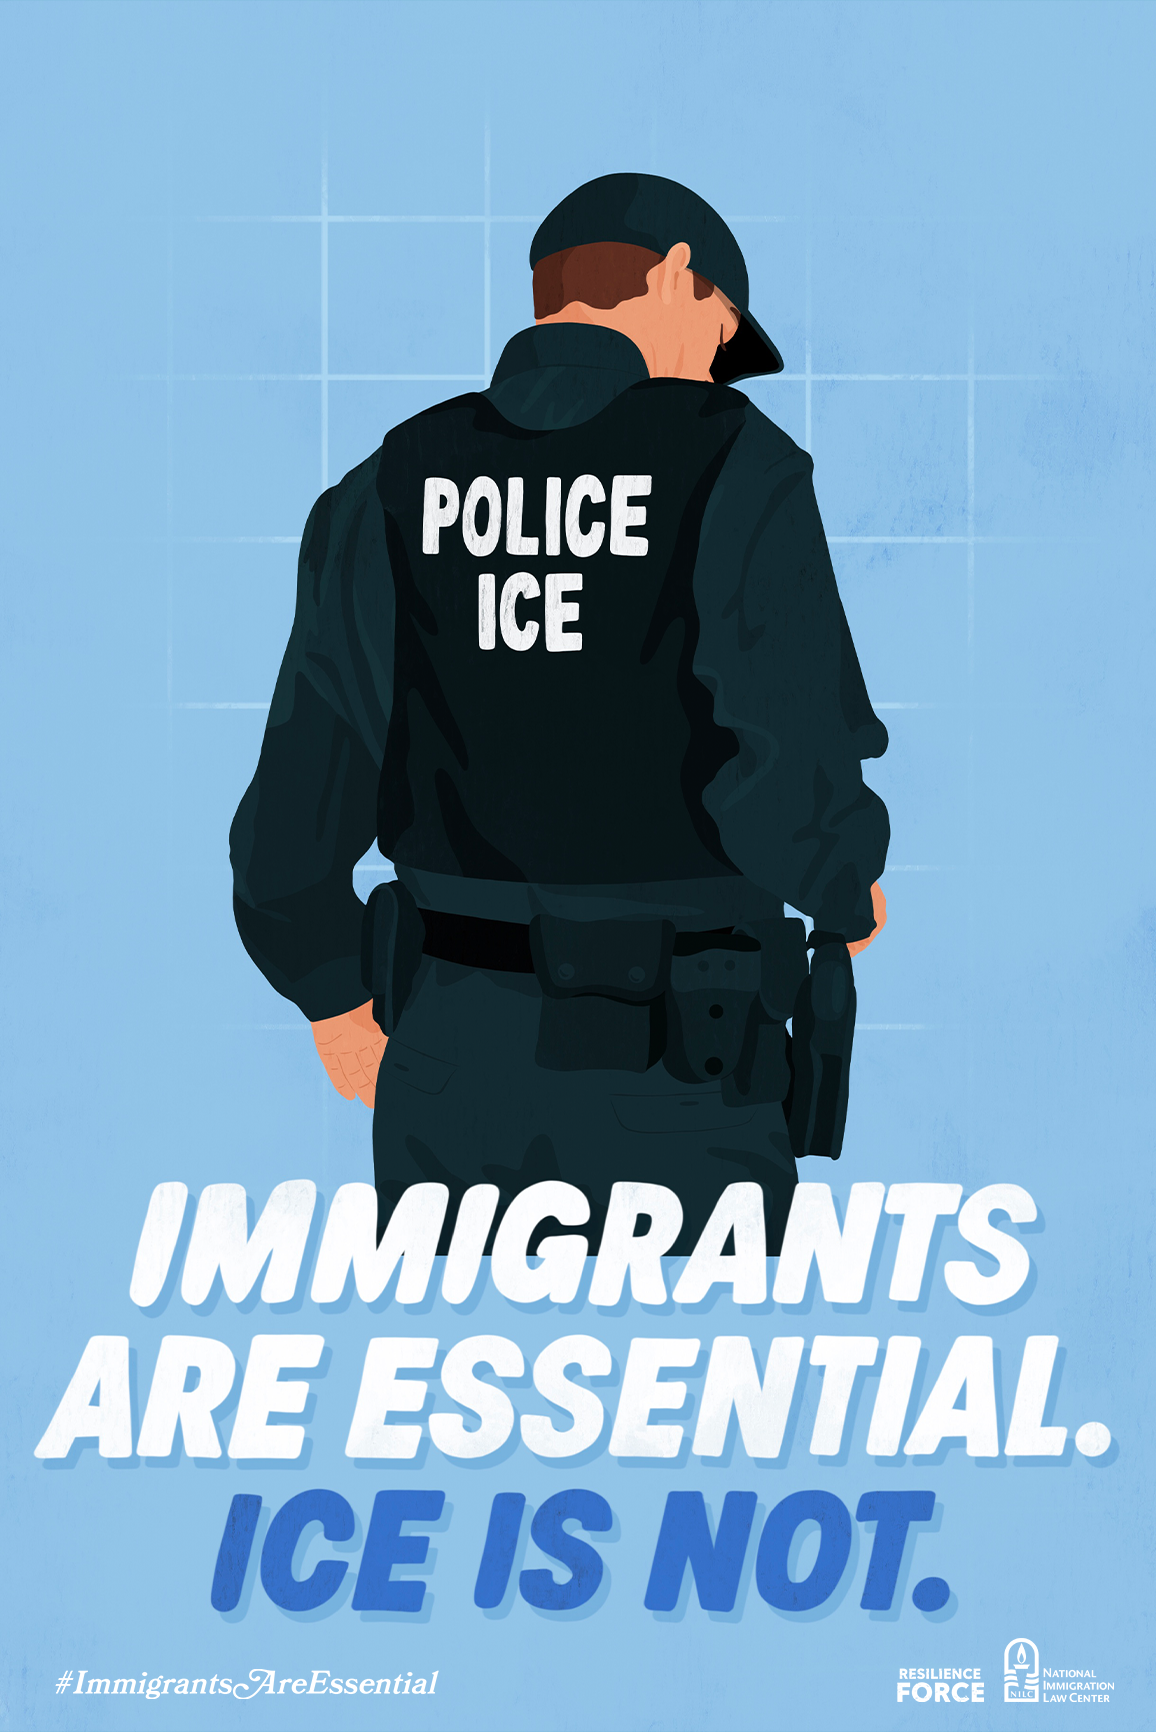 Immigrants Are Essential. ICE is not.